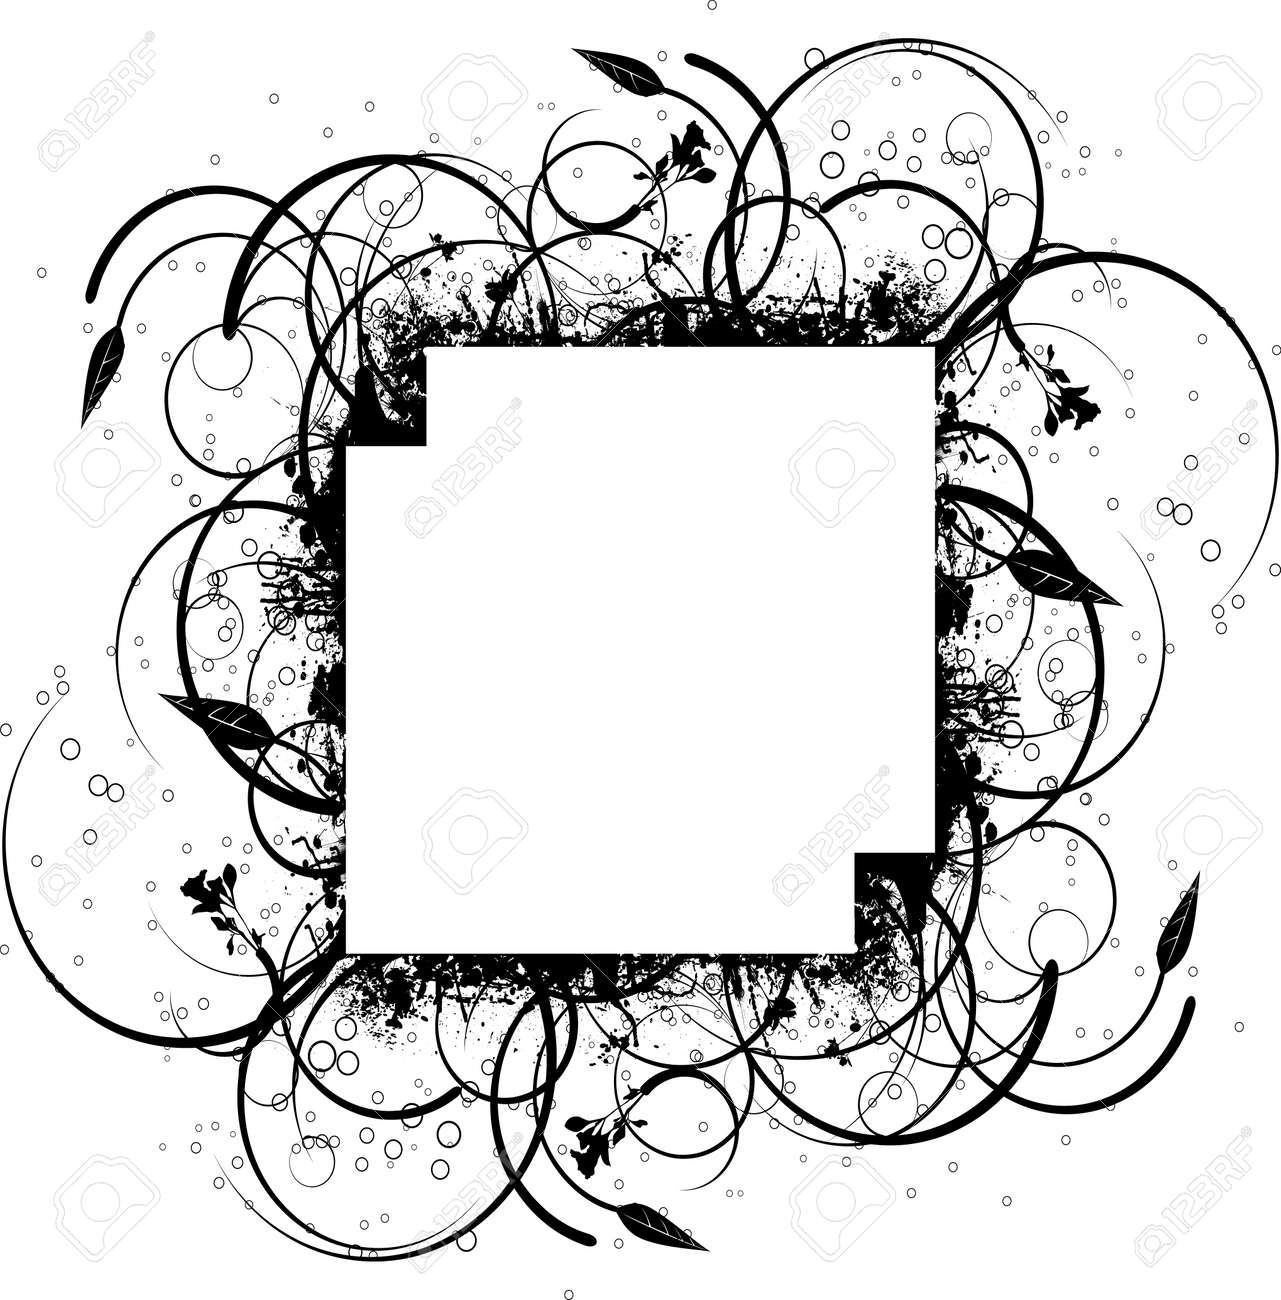 Abstract floral ink splat border design in black and white Stock Vector - 2531031